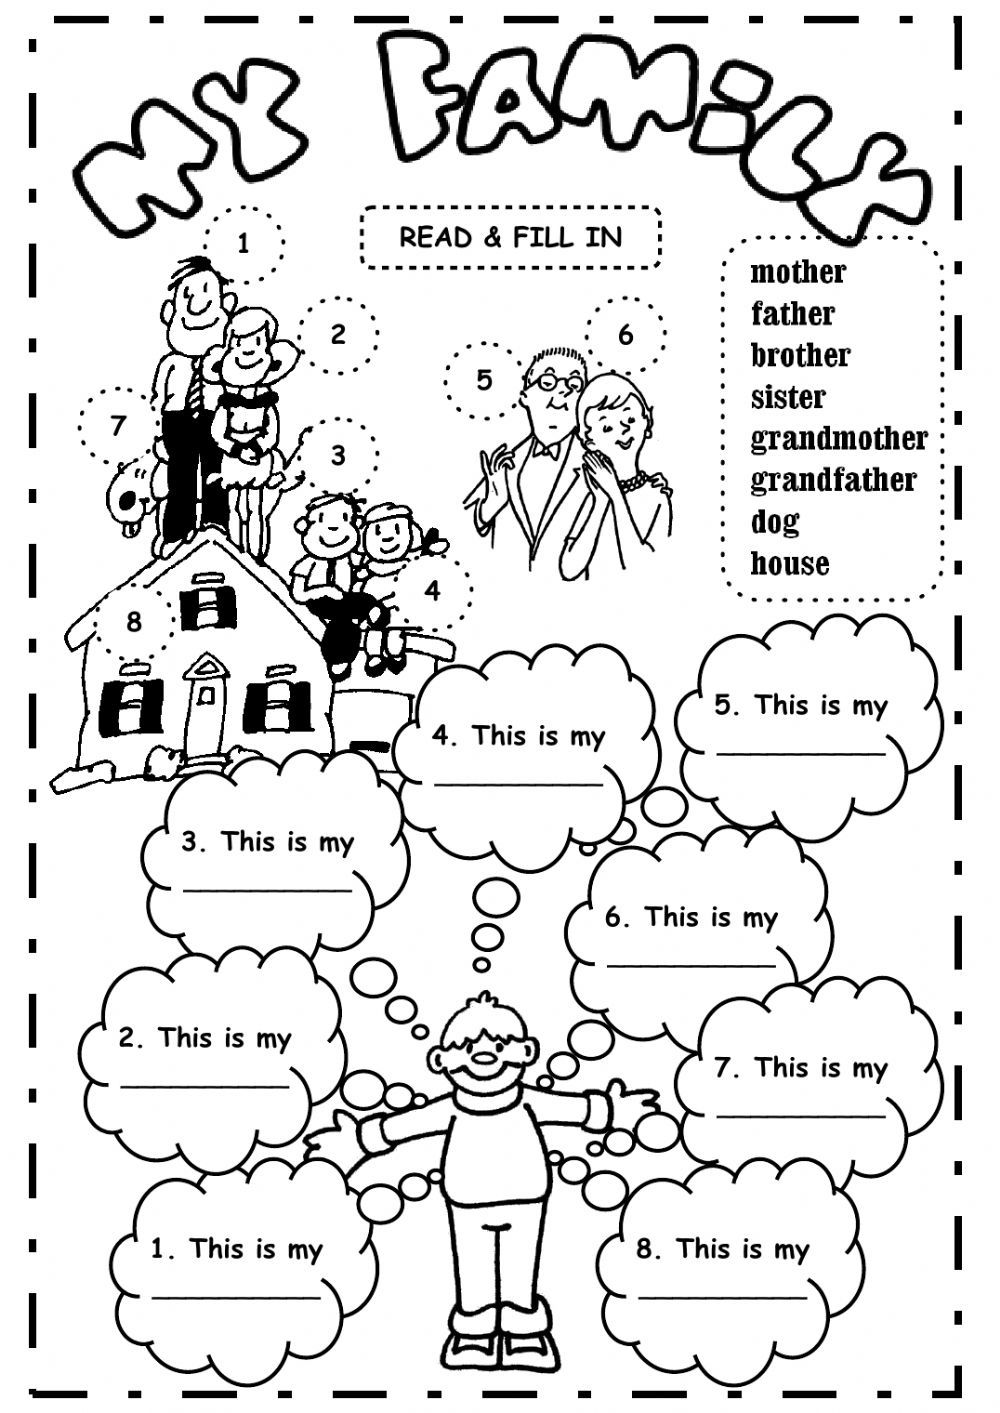 Masses Of Atoms Worksheet Answers Word English Exercises The Food  Ingles Fbio  Pinterest  English  Worksheets For Distributive Property Pdf with W-4 Worksheet Pdf English Exercises The Food  Ingles Fbio  Pinterest  English Exercises Letter M Worksheet Excel